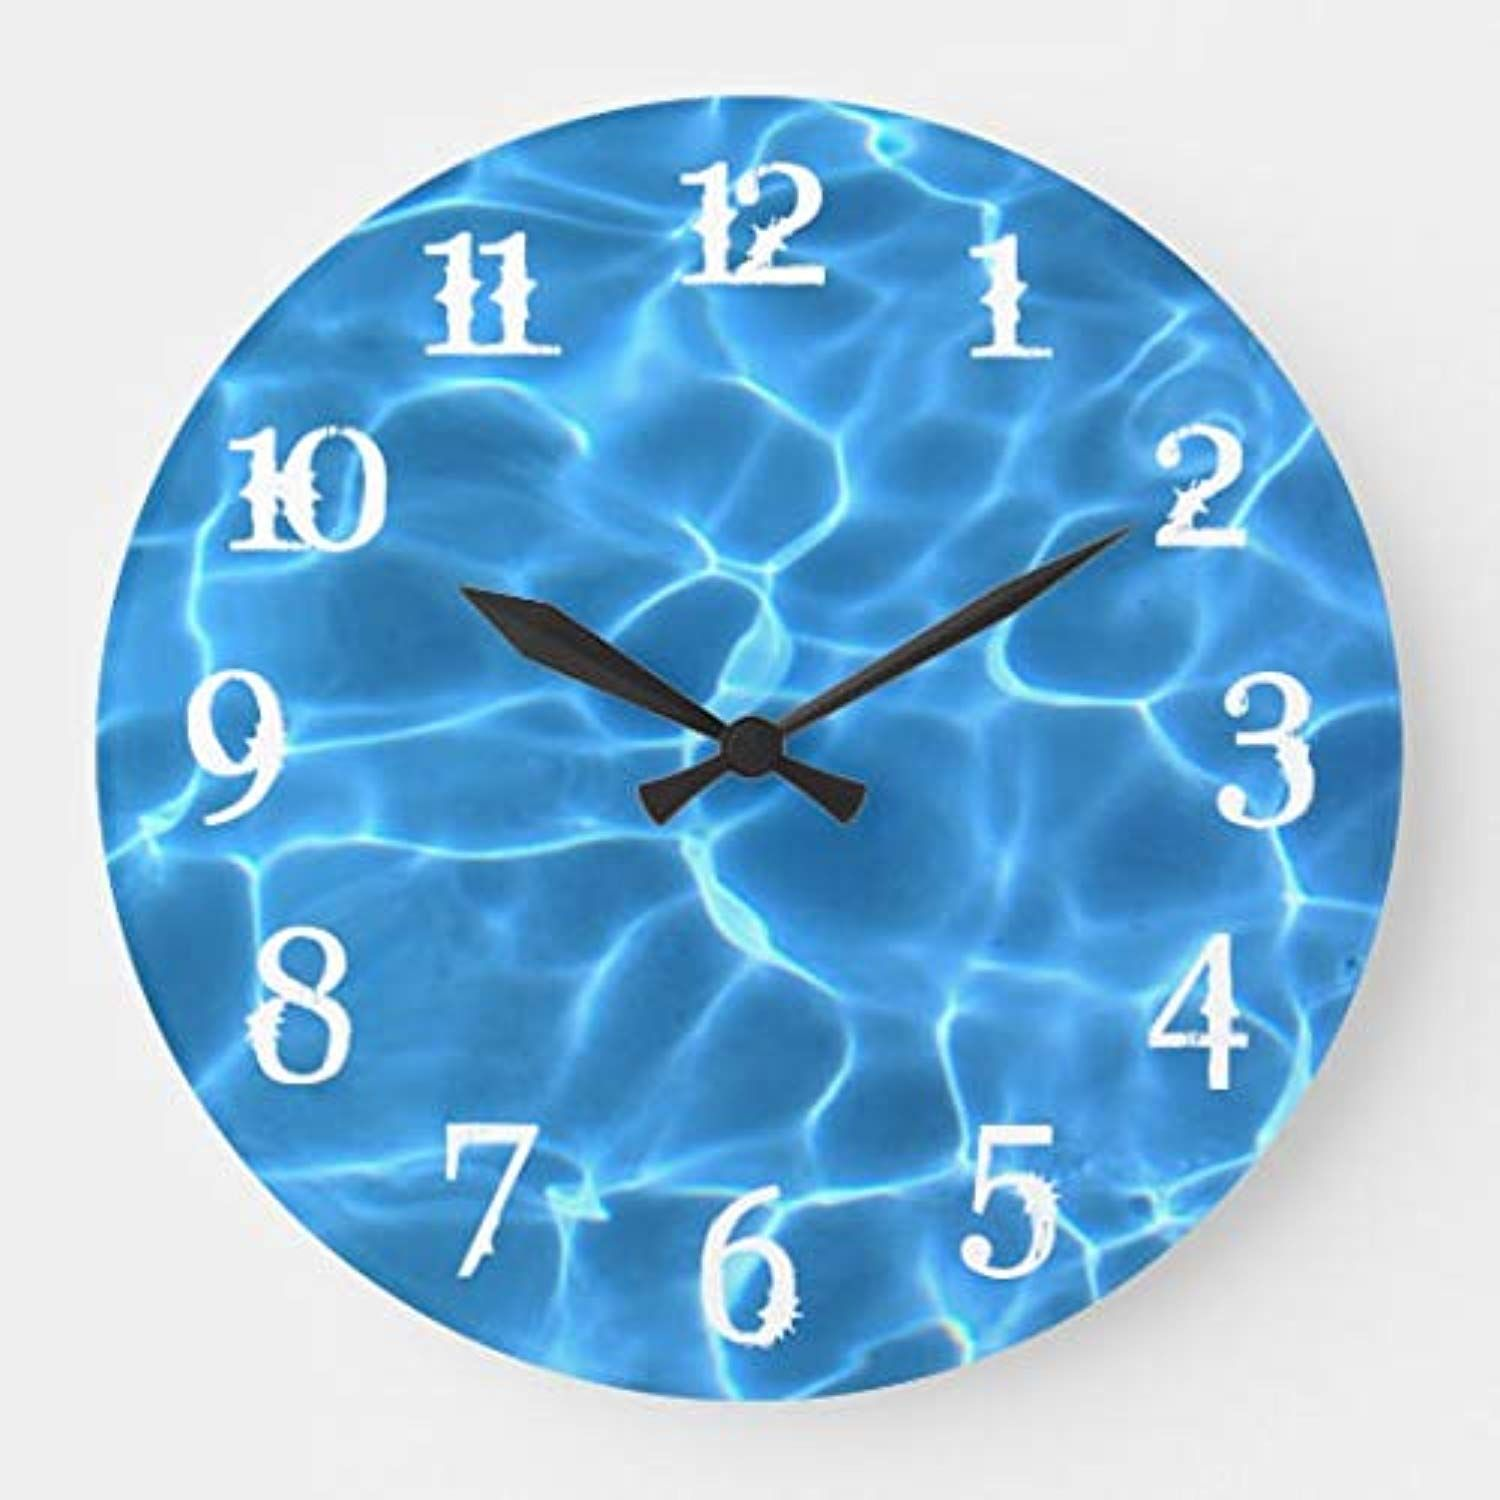 White Splash Numbers Blue Swimming Pool Silent Wall Clock For